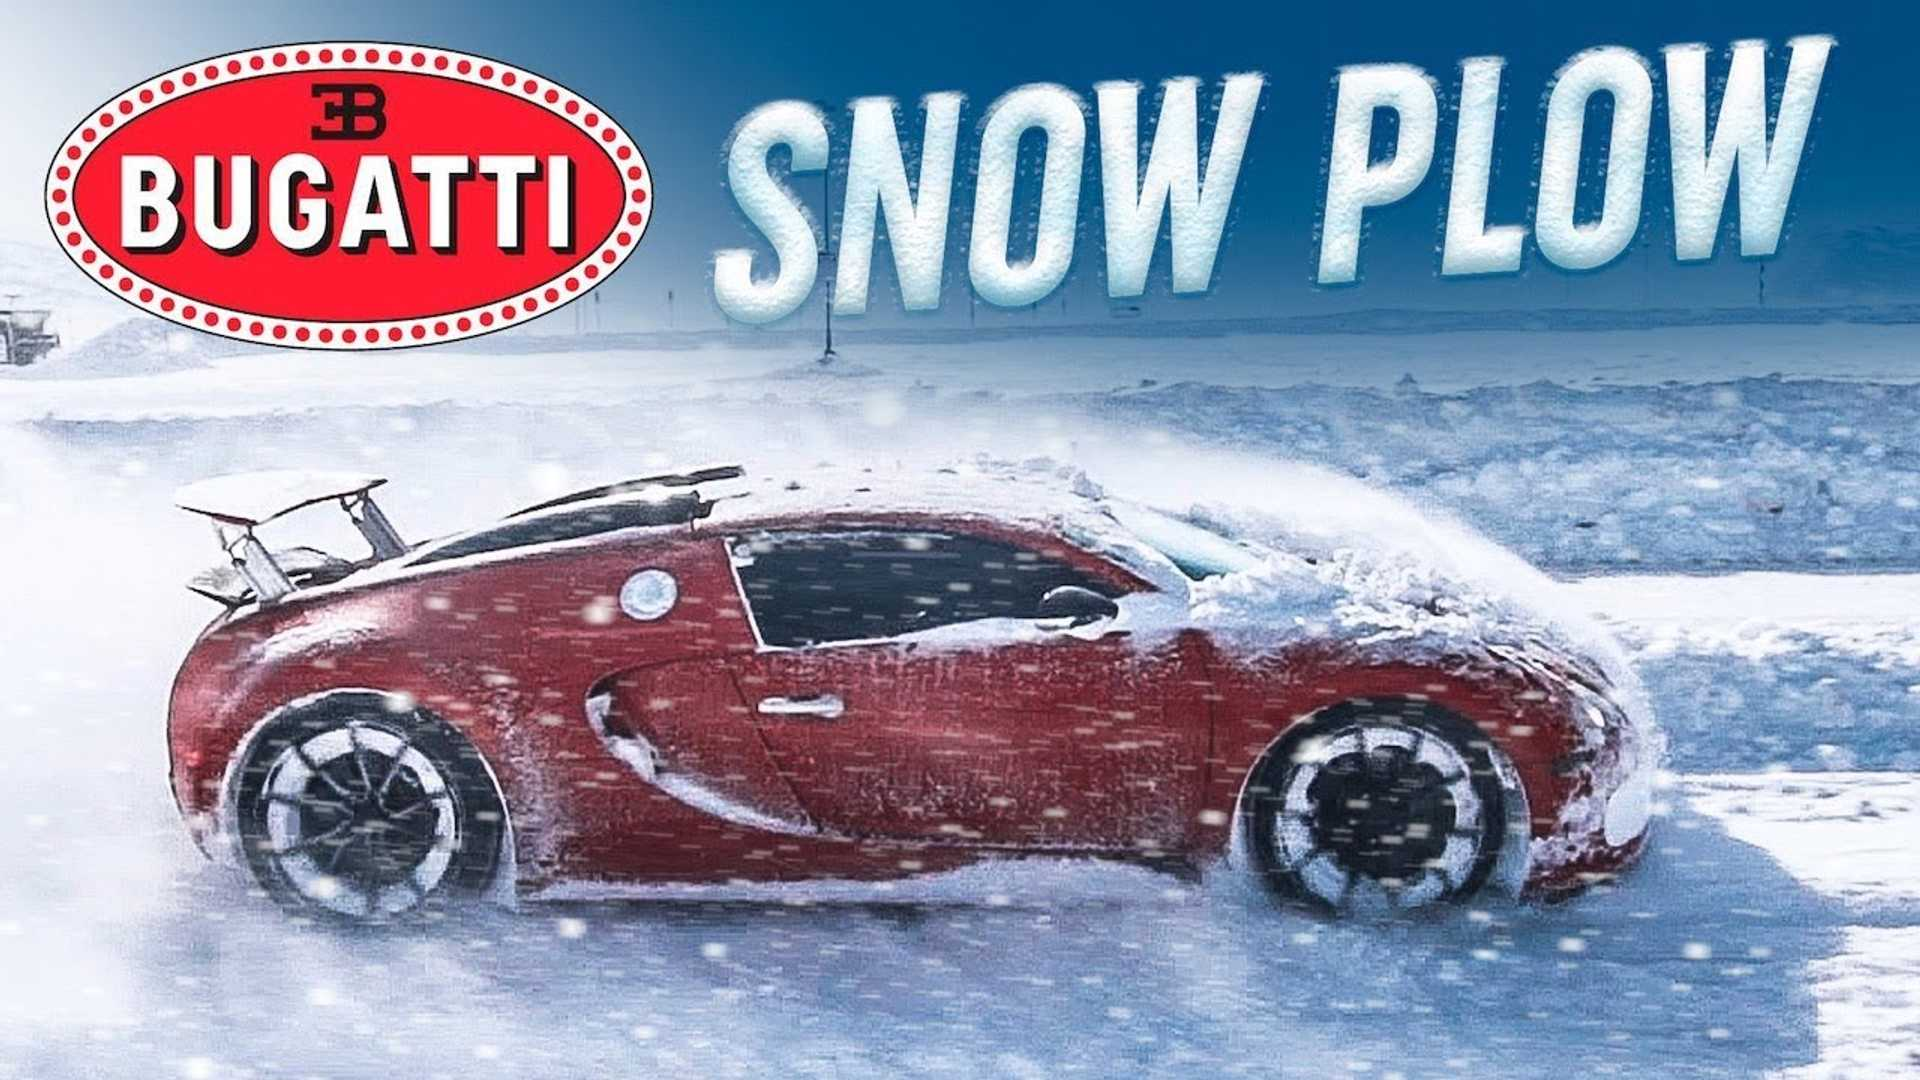 Bugatti Veyron plays in the snow, and an Aventador joins the fun